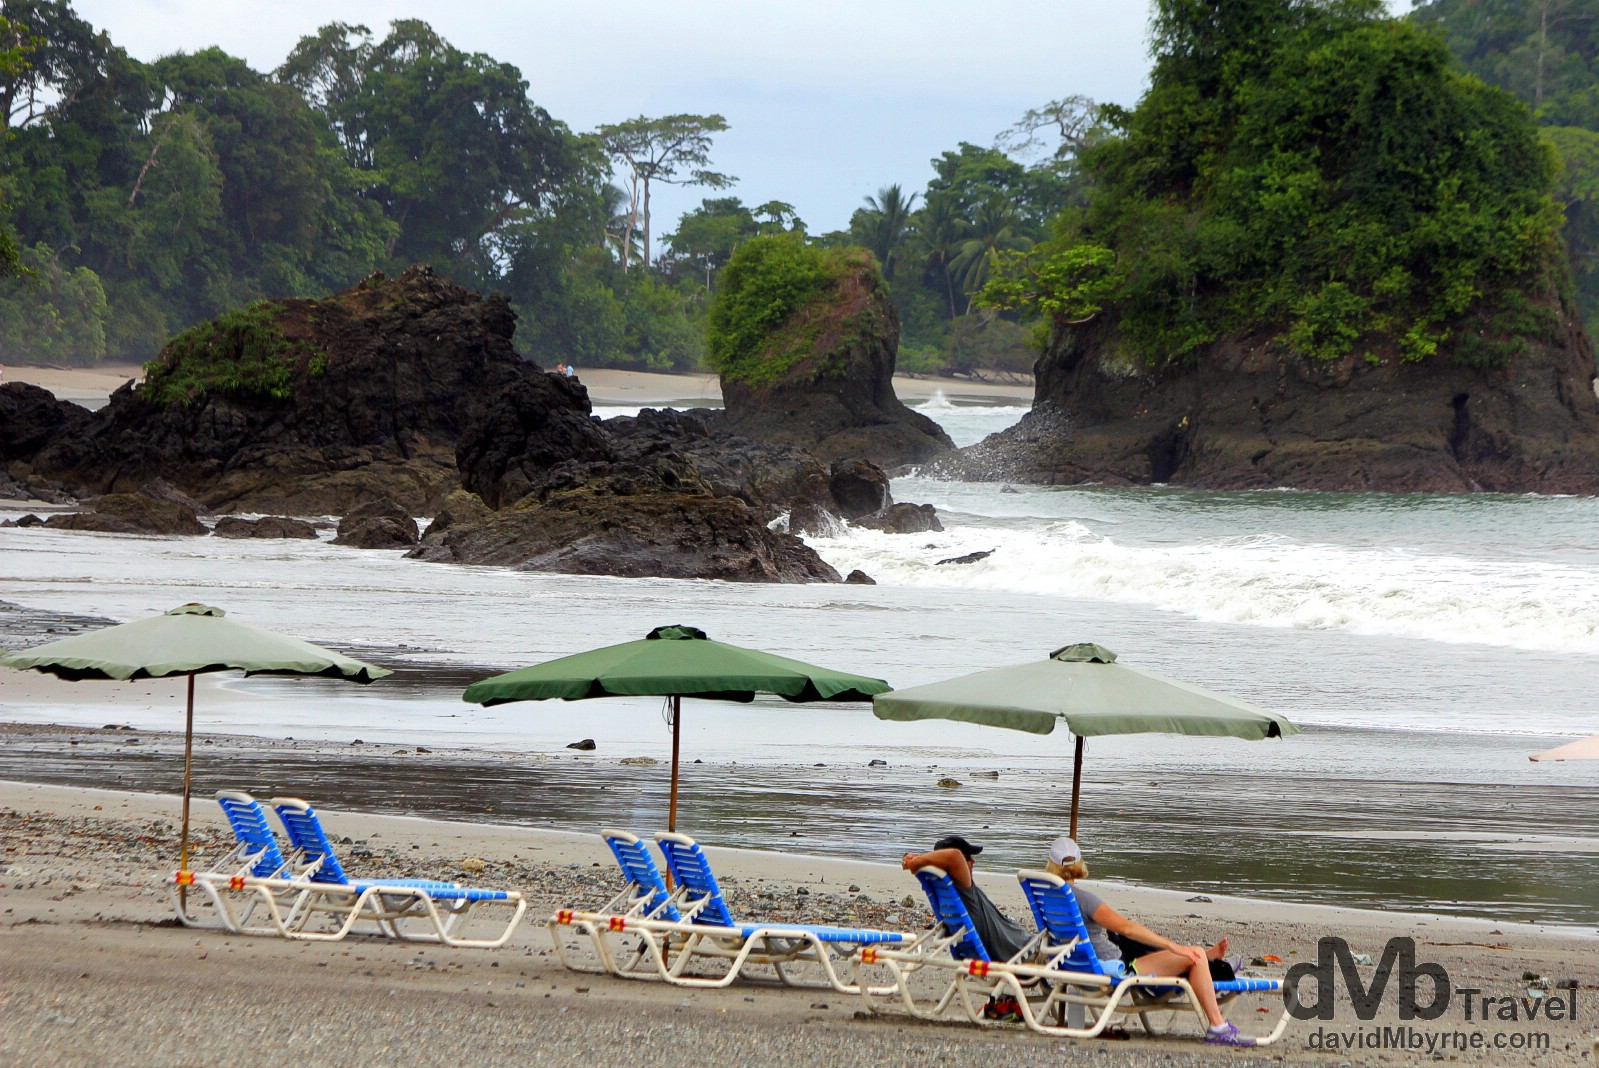 The beach at Manuel Antonio on the edge of Parque Nacional Manuel Antonio, Costa Rica. June 26th 2013.